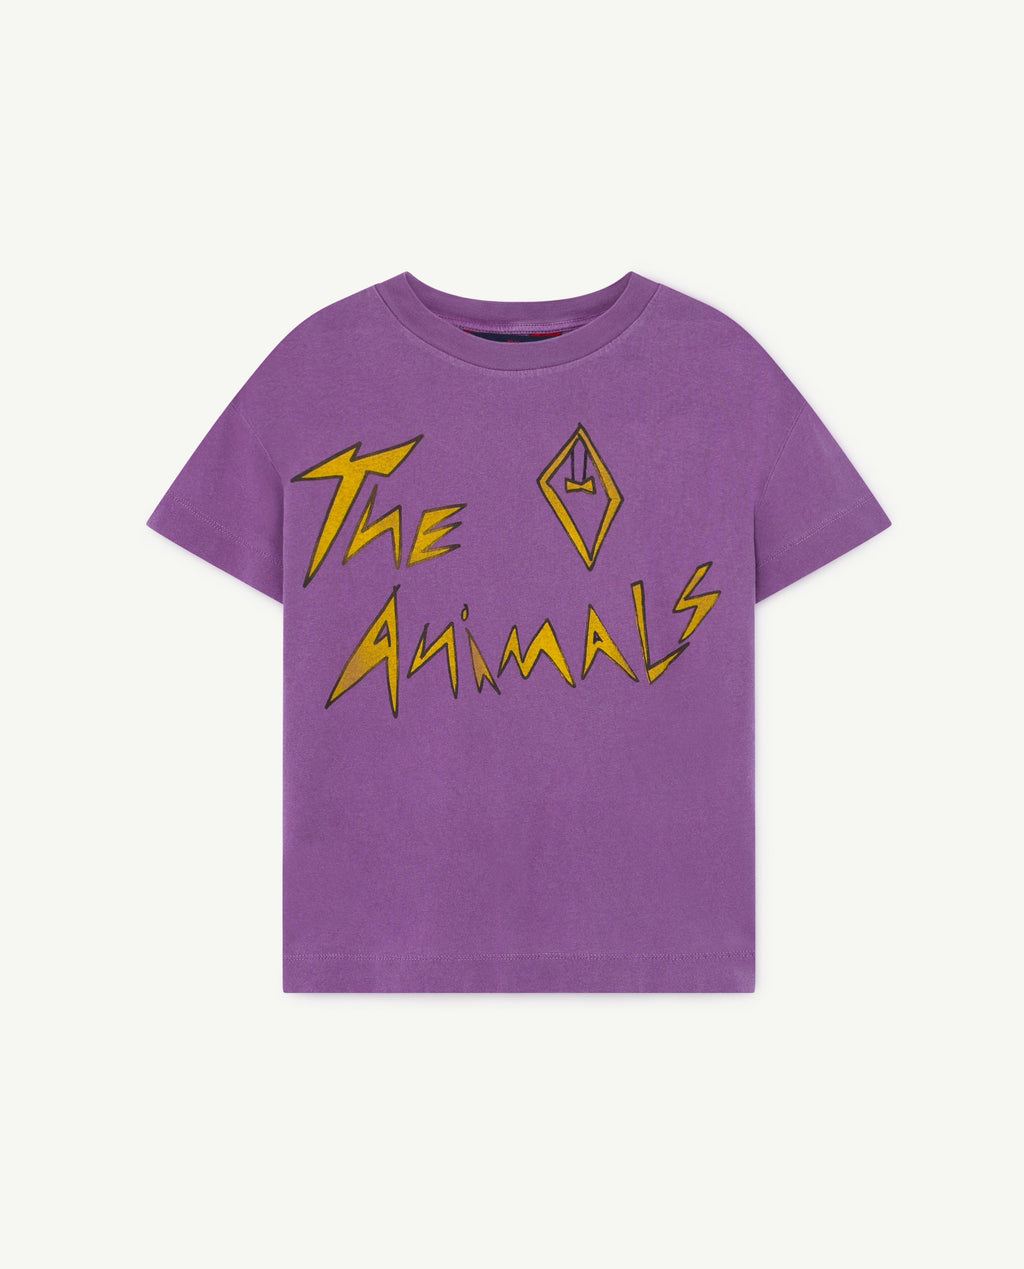 Rooster Kids T-Shirt - Violet The Animals